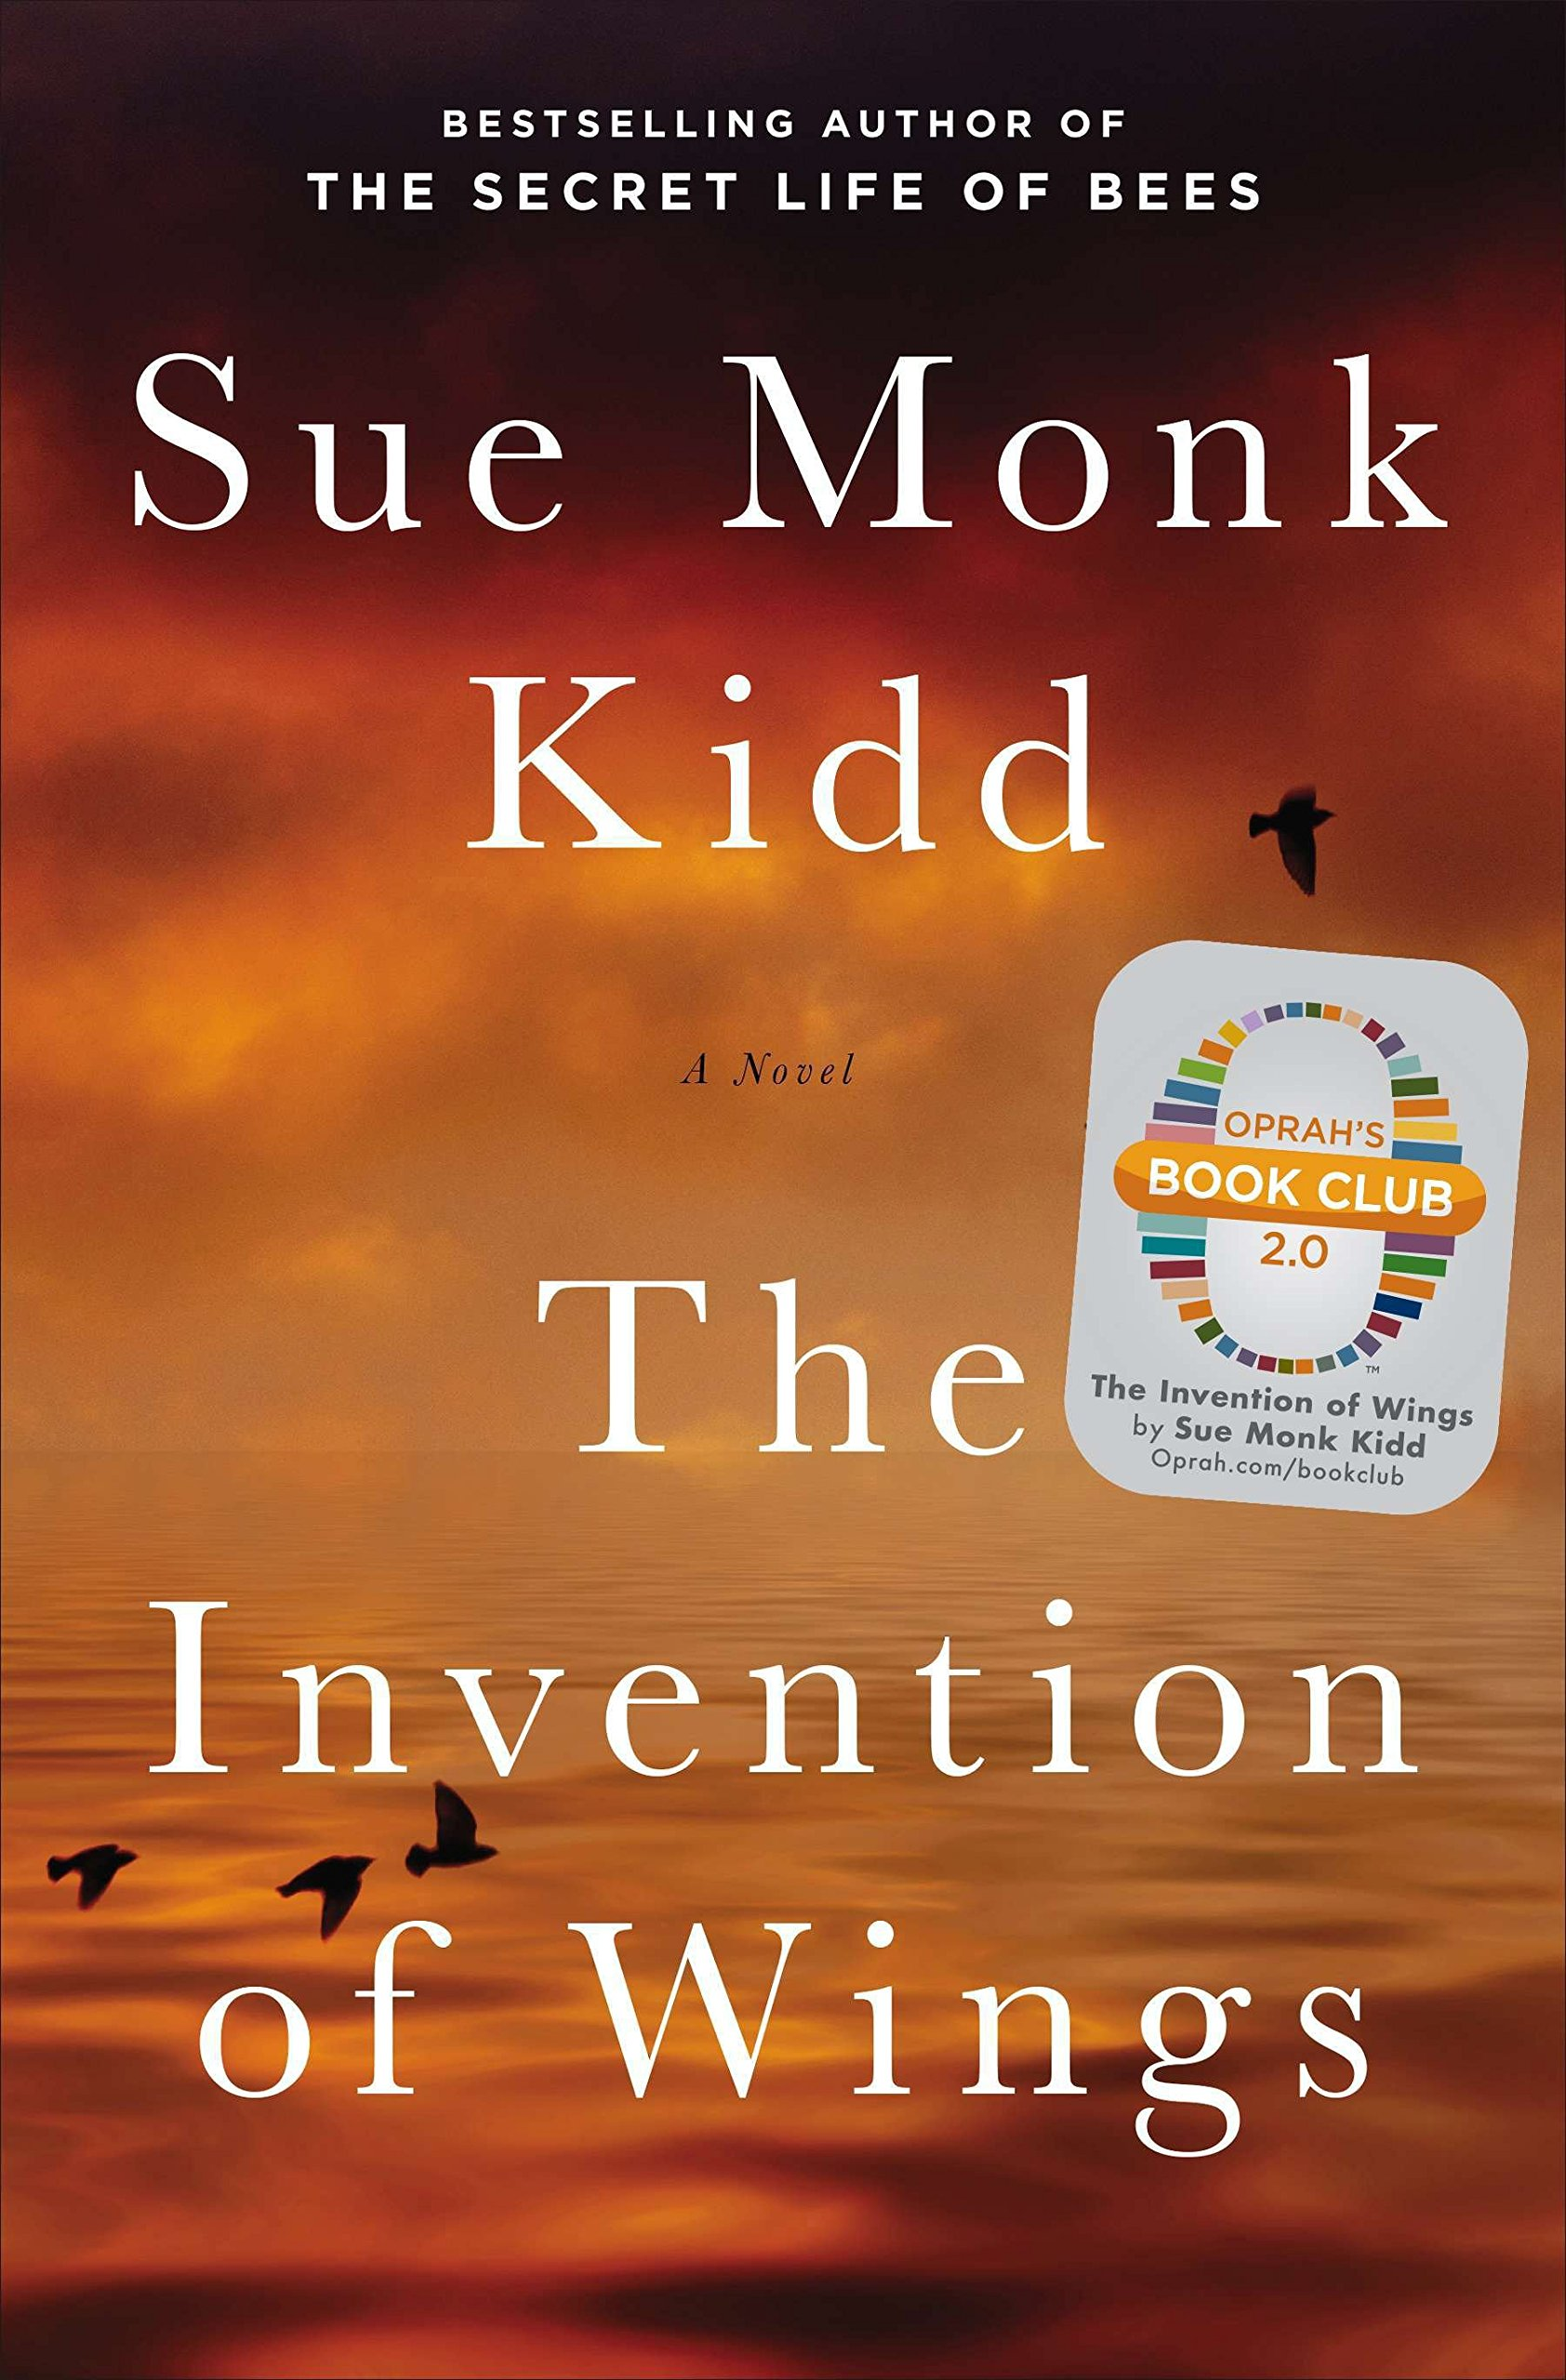 The Invention of Wings: A Novel: Amazon.ca: Kidd, Sue Monk: Books